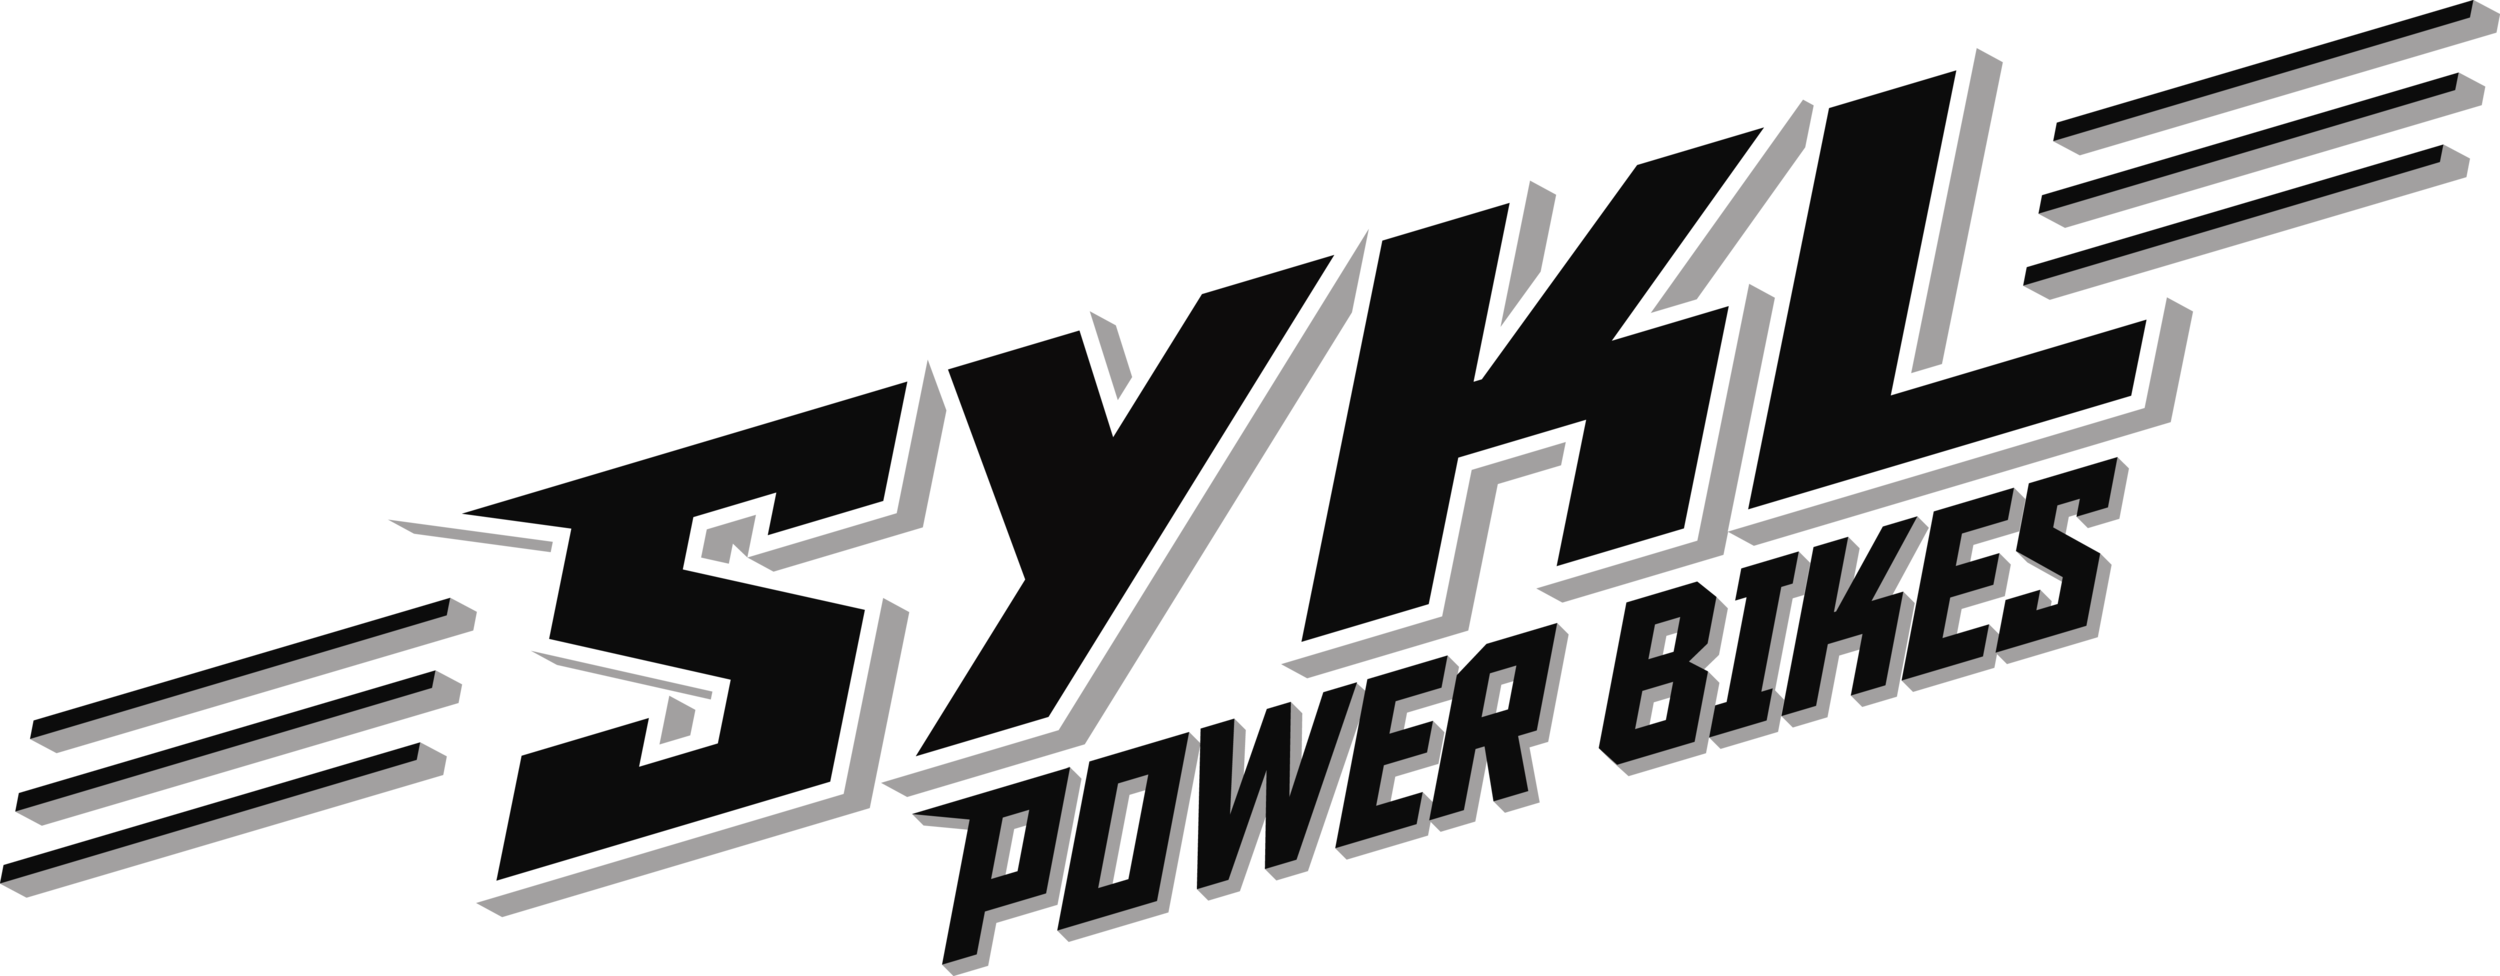 SYKL Power Bikes.png